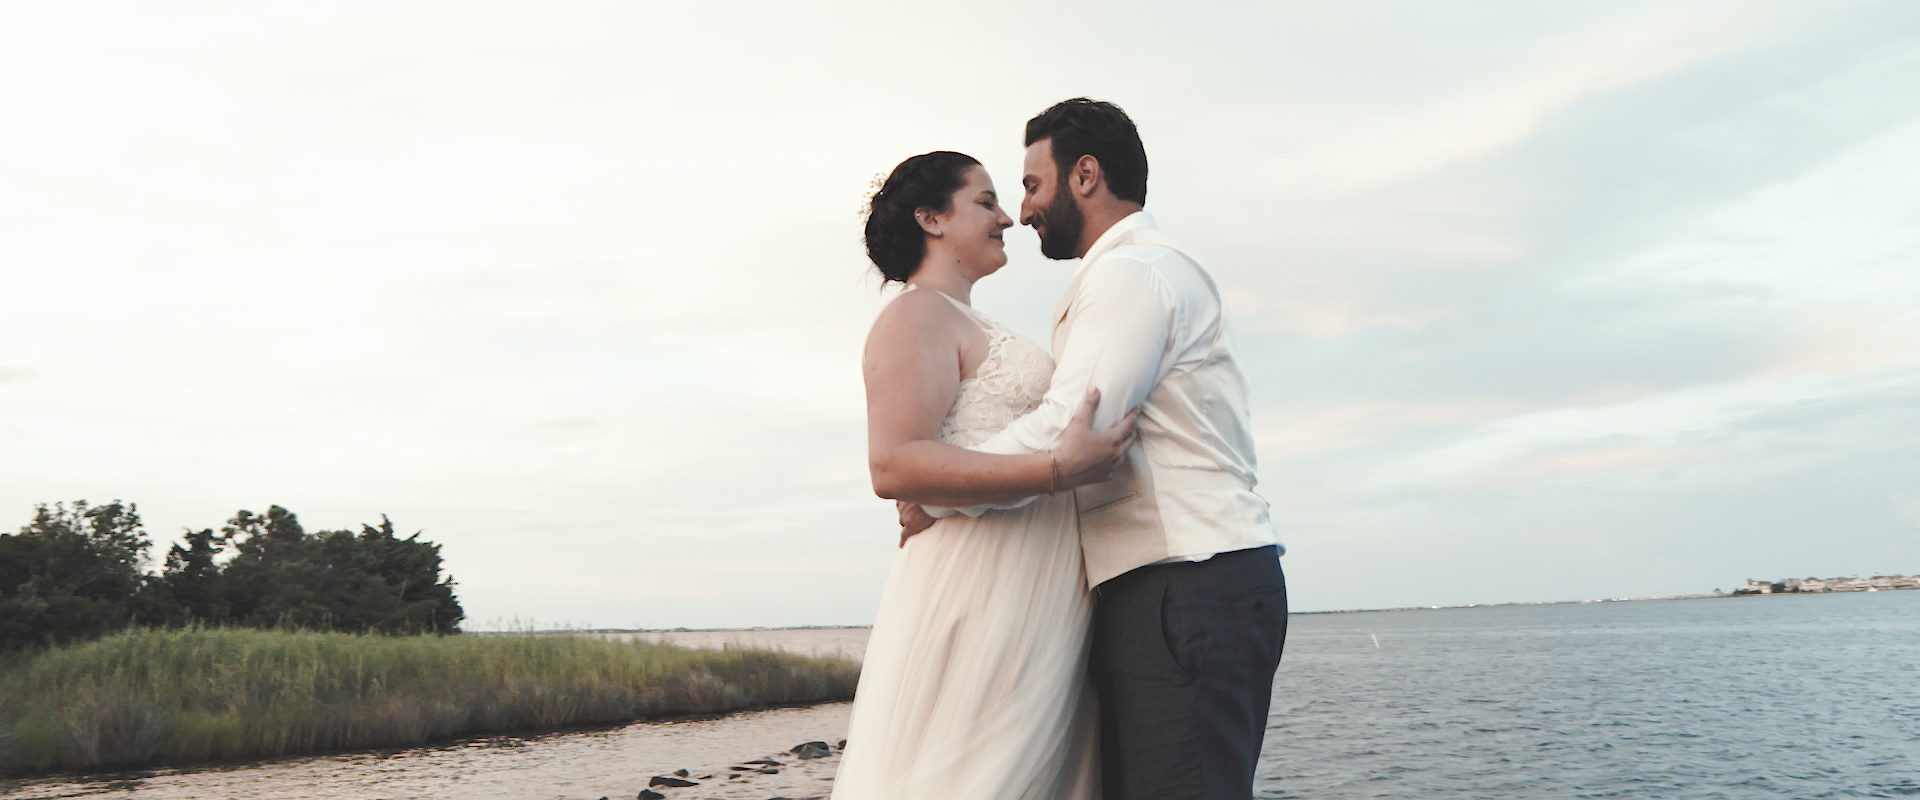 Zack + Hayley | Manteo, North Carolina | Roanoke Island Festival Park